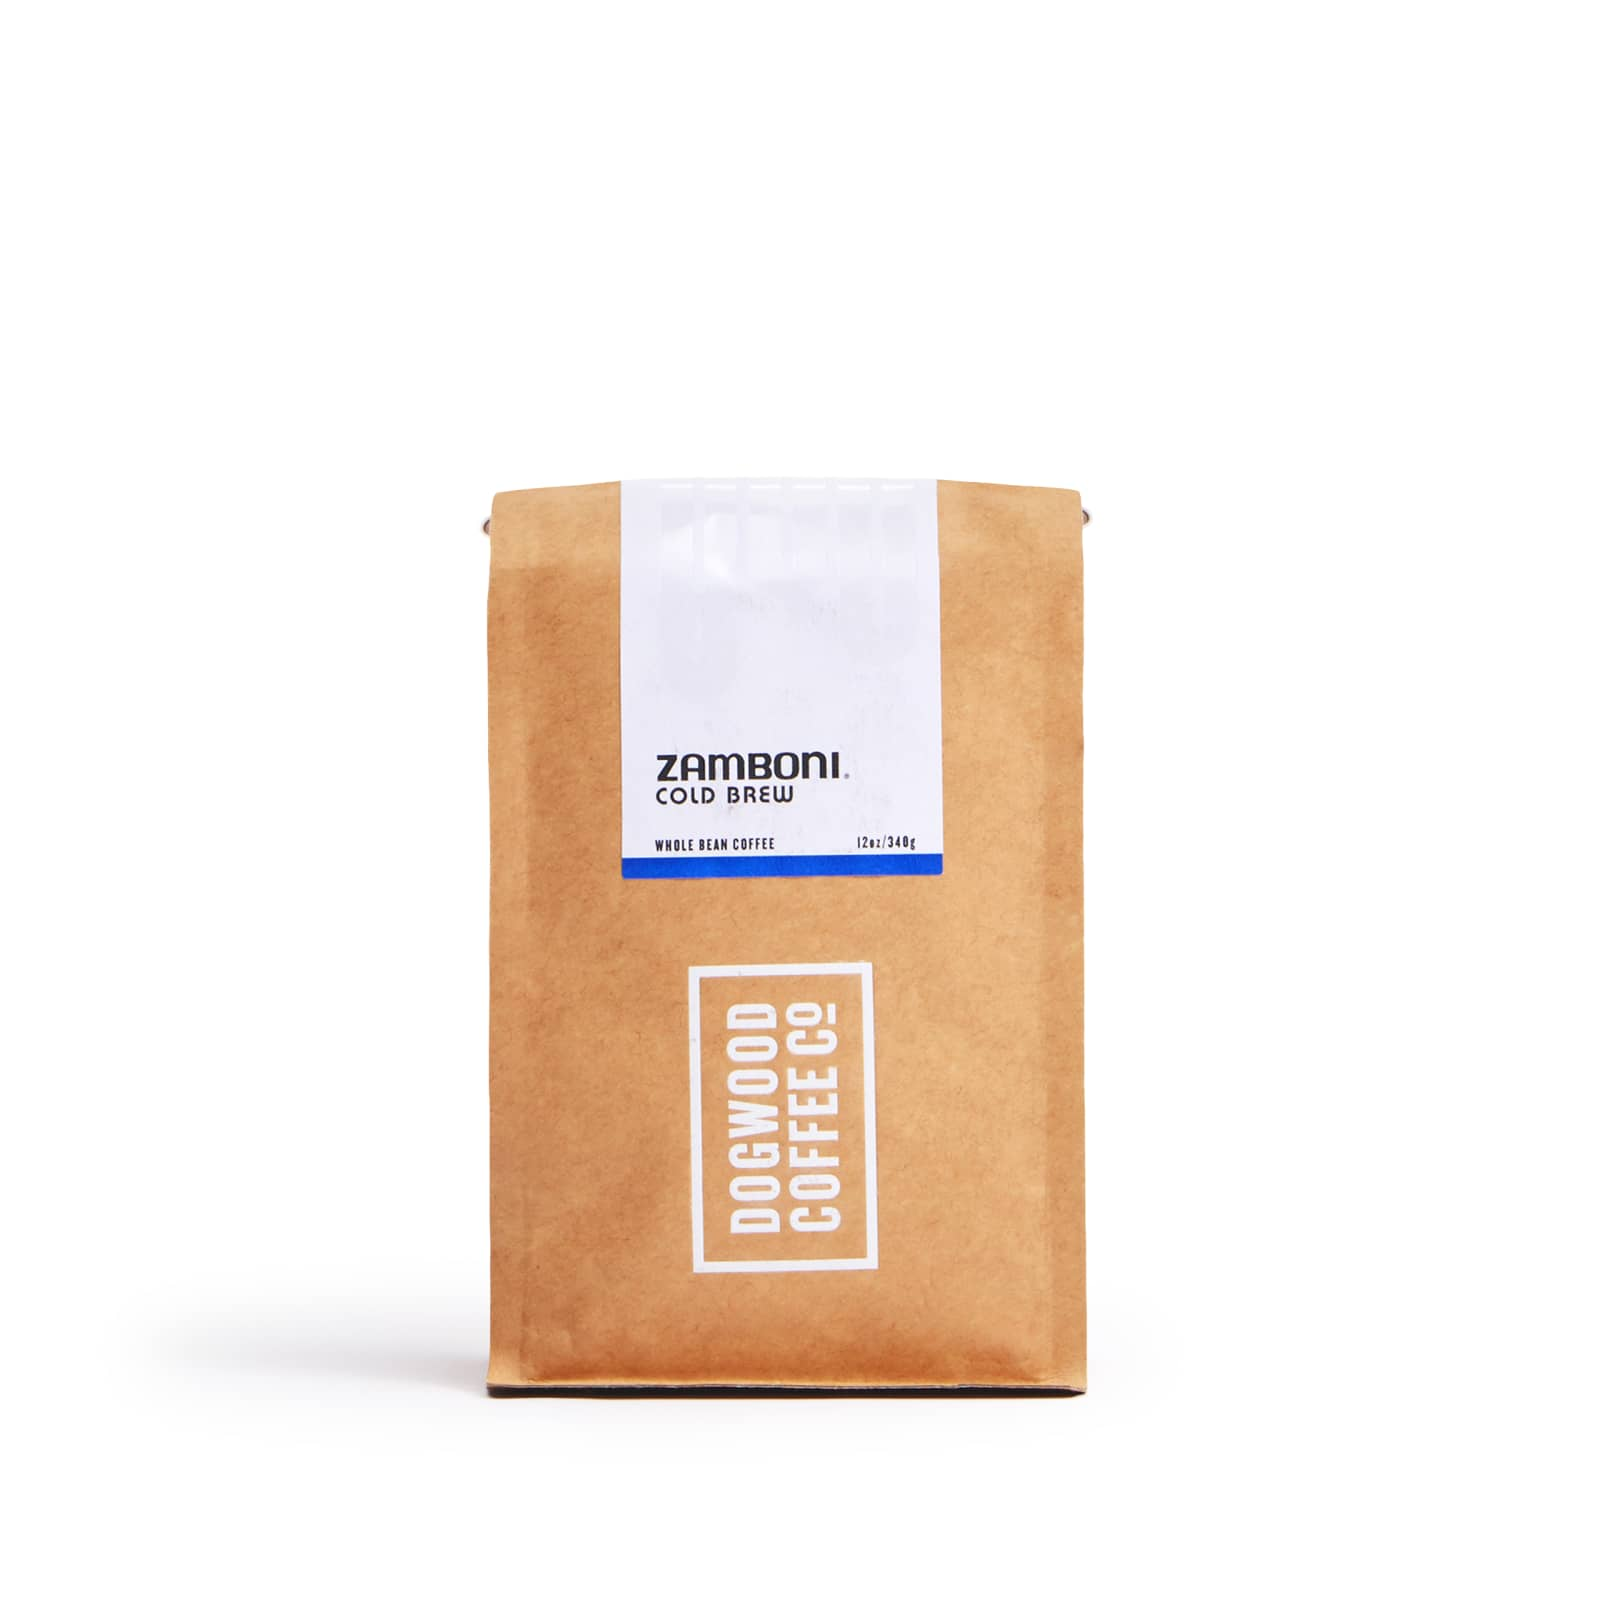 Dogwood zamboni cold brew coffee bag